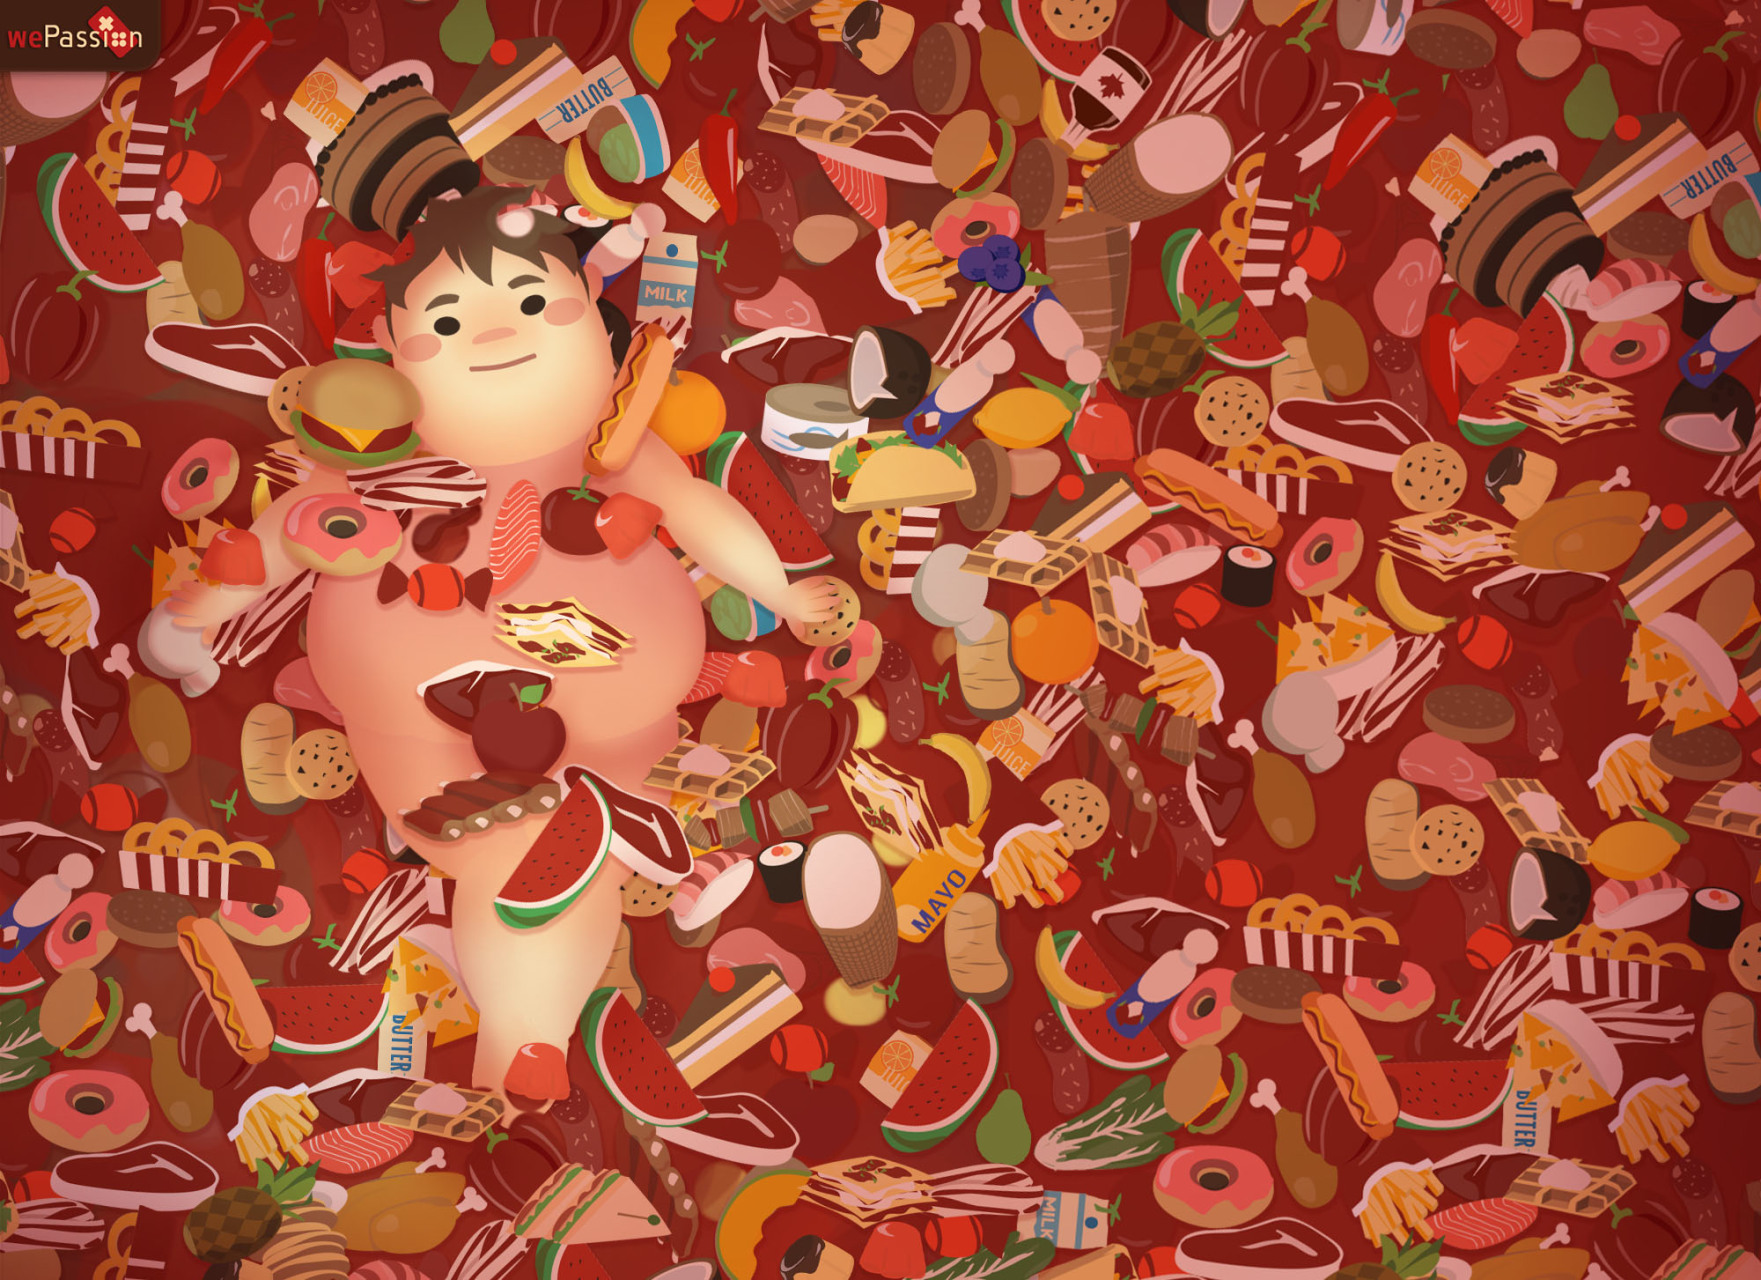 Feed The Fat Wallpaper